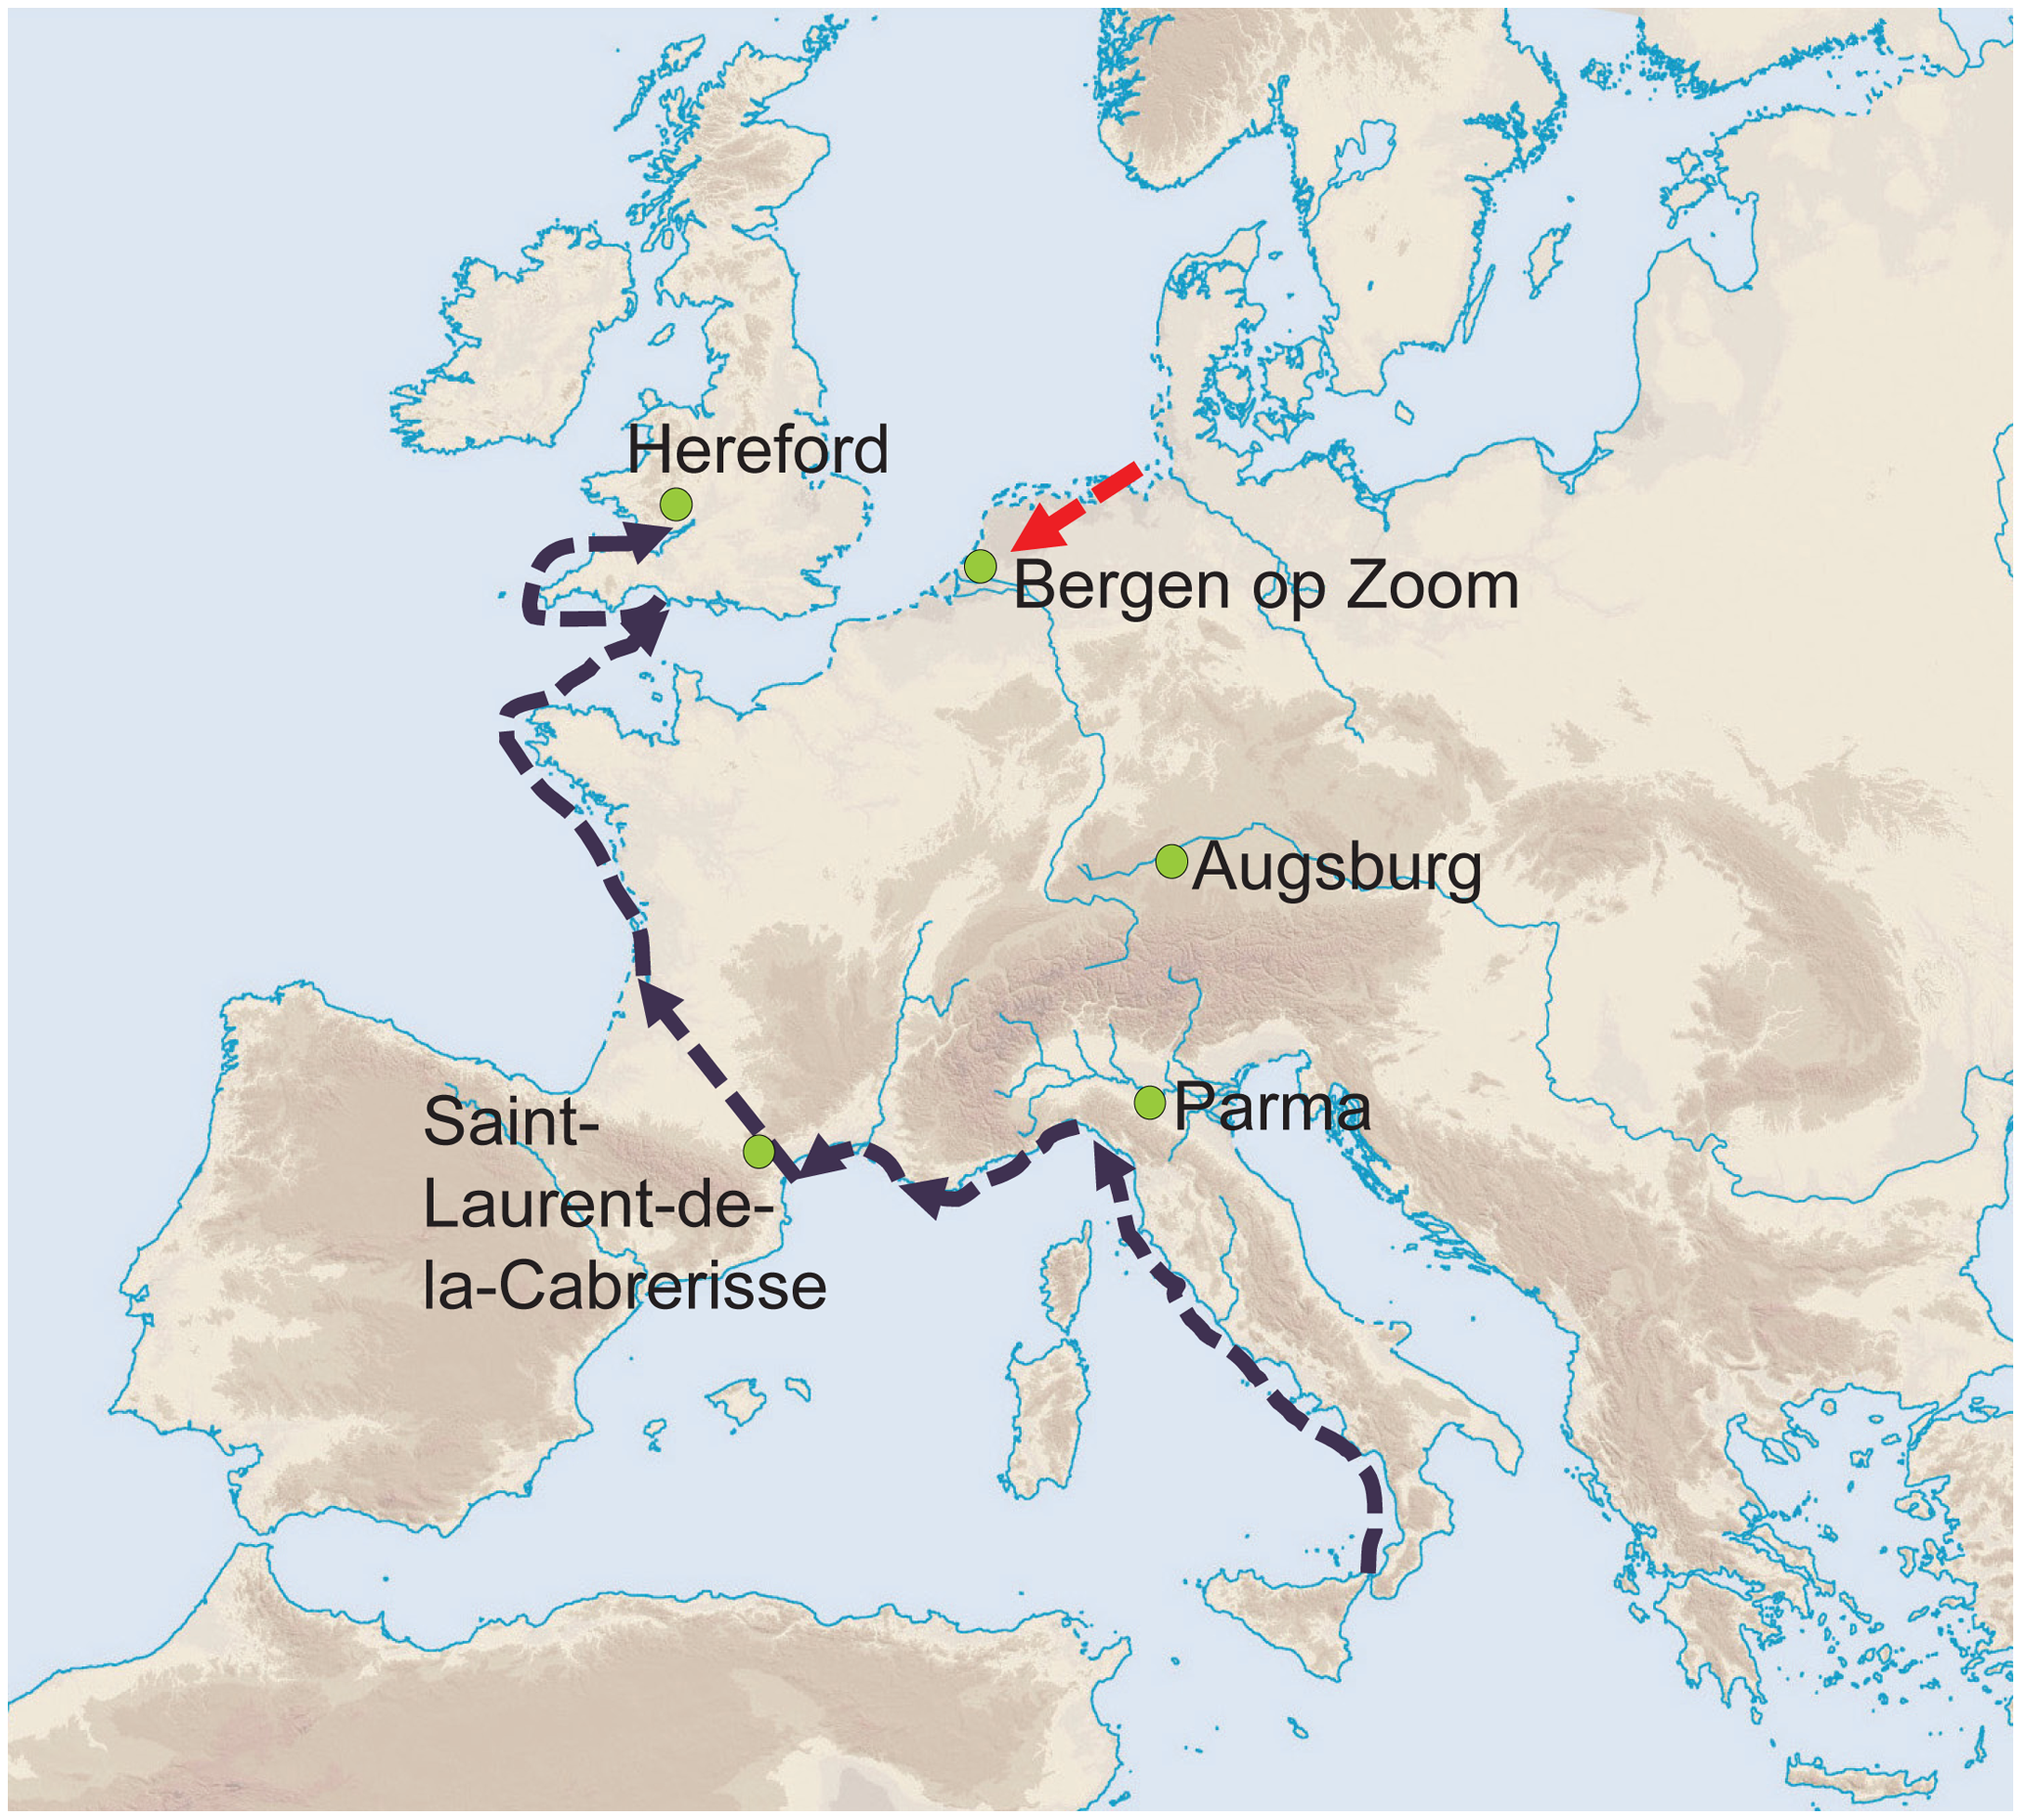 Geographical position of the five archaeological sites investigated.